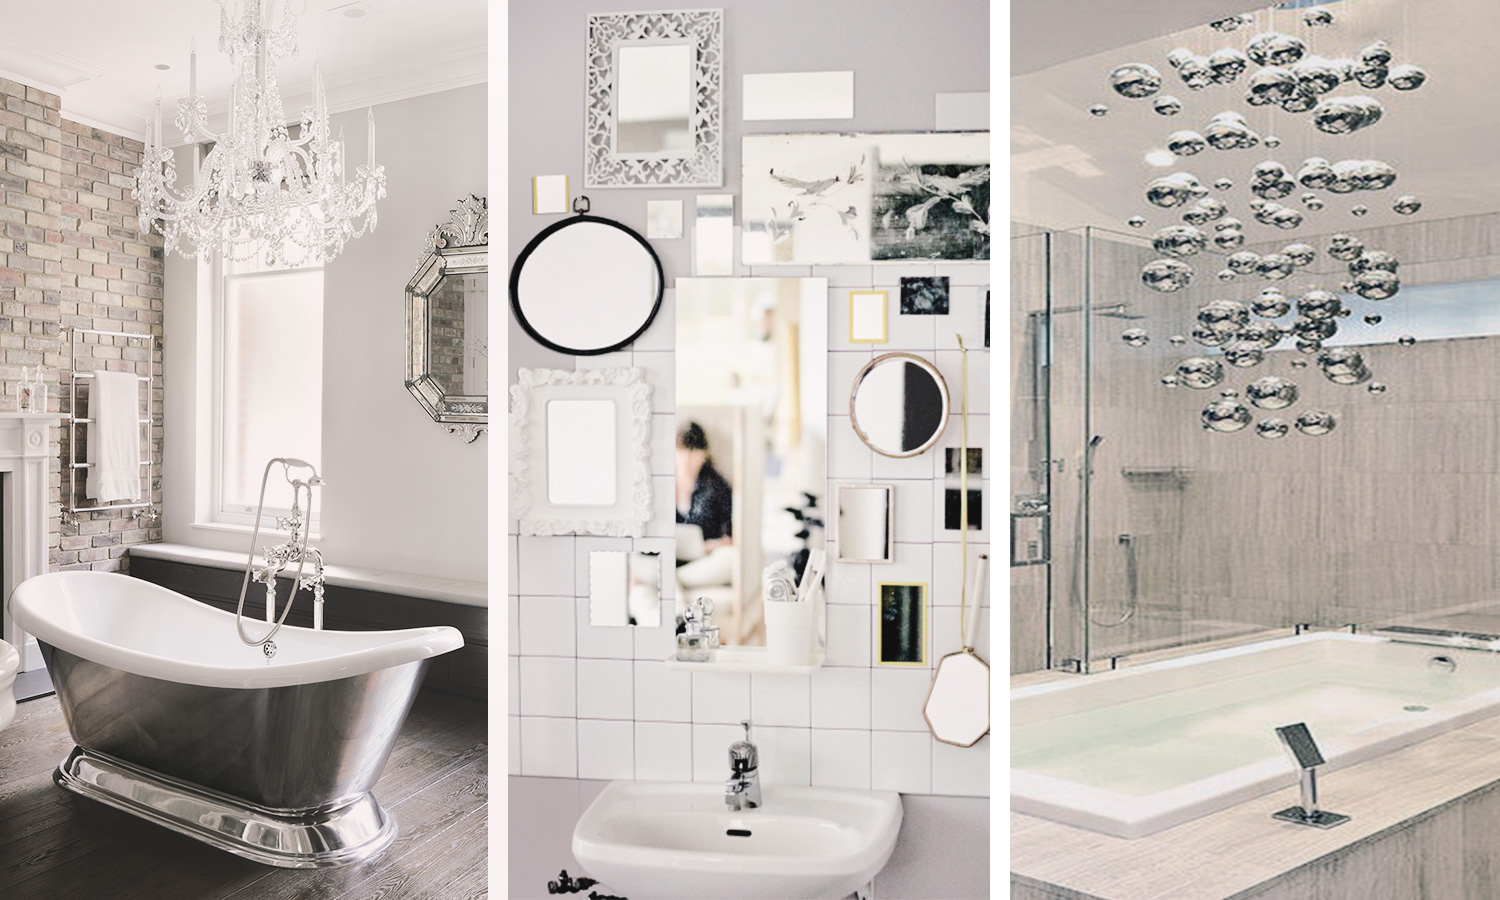 Bathroom inspiration glitz and glam eclectic home for Bathroom ideas uk 2015